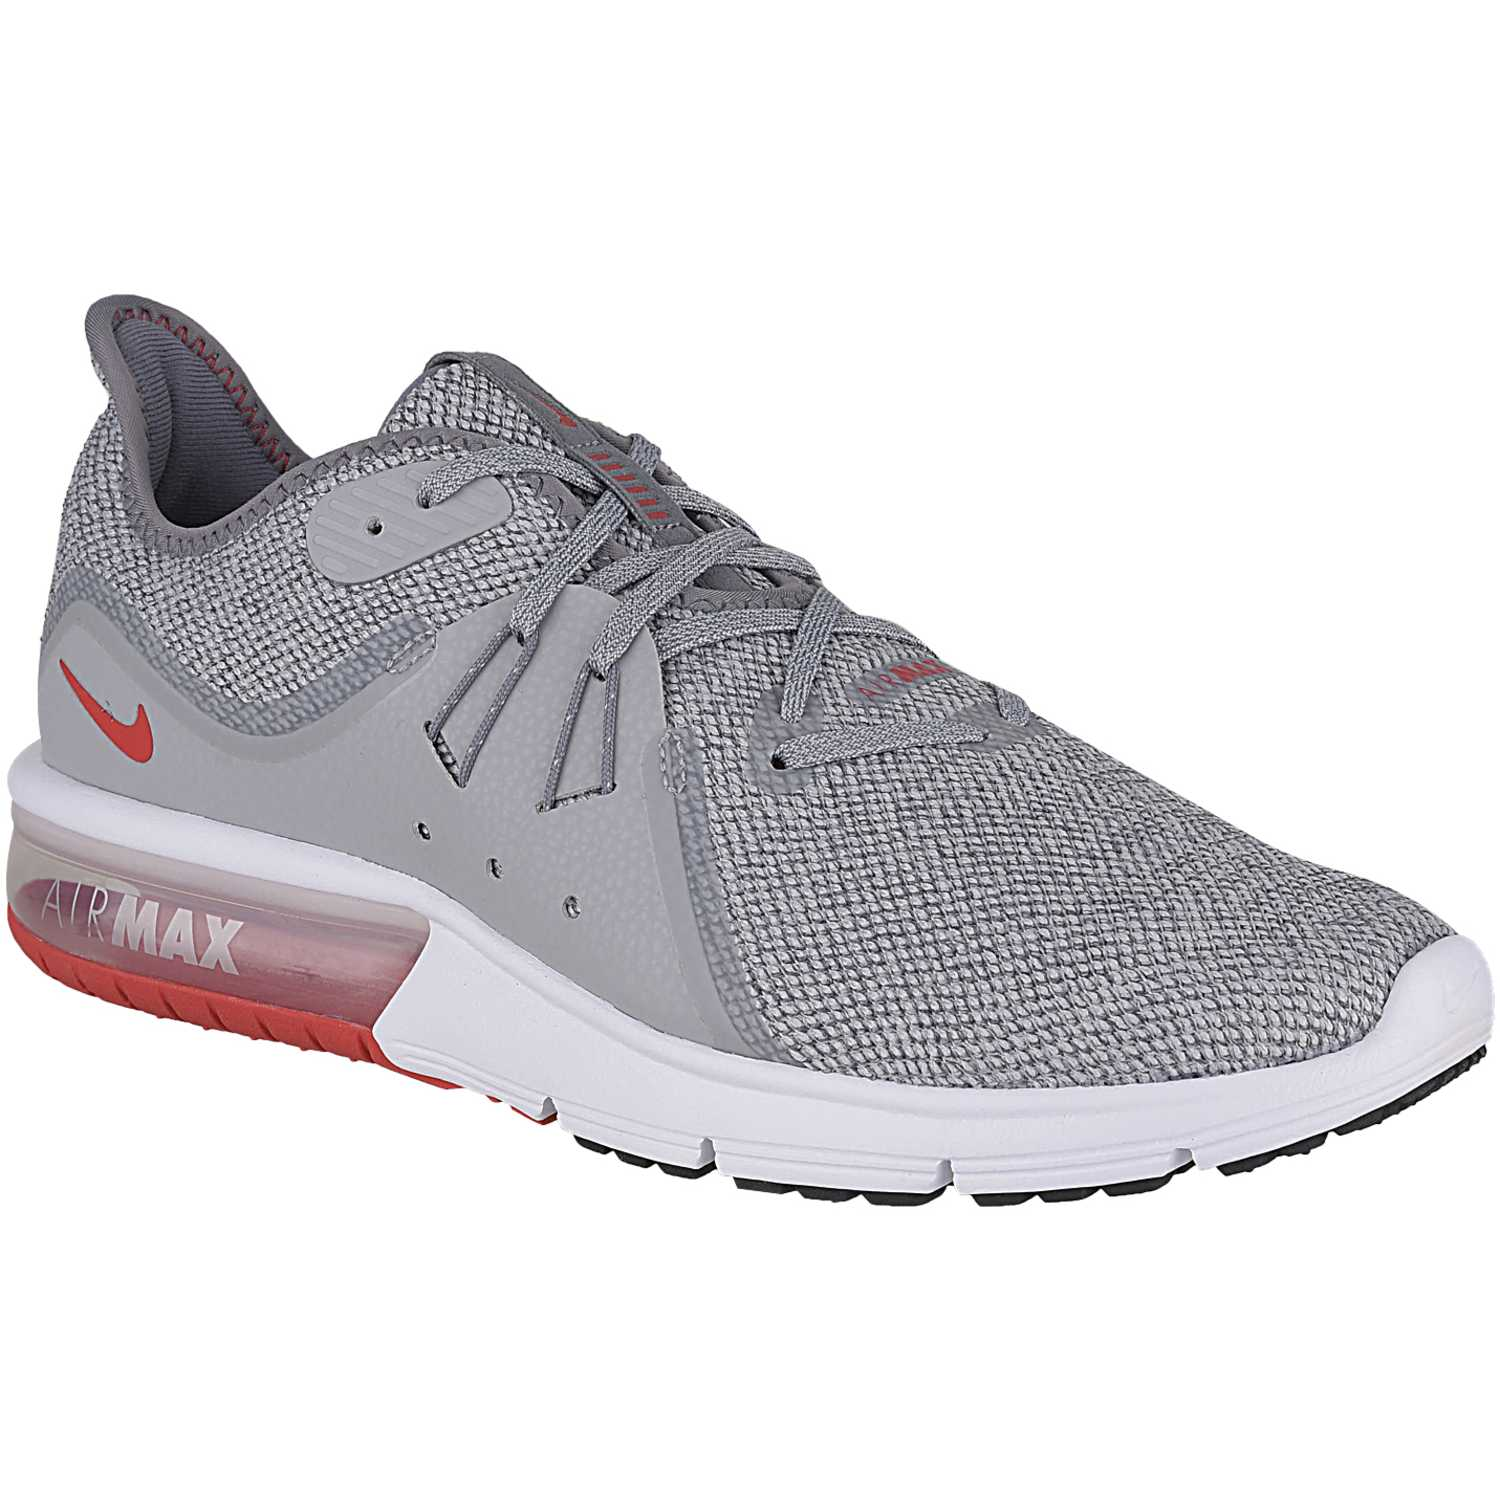 more photos 9a1be 980c4 Zapatilla de Hombre Nike Gris   blanco nike air max sequent 3